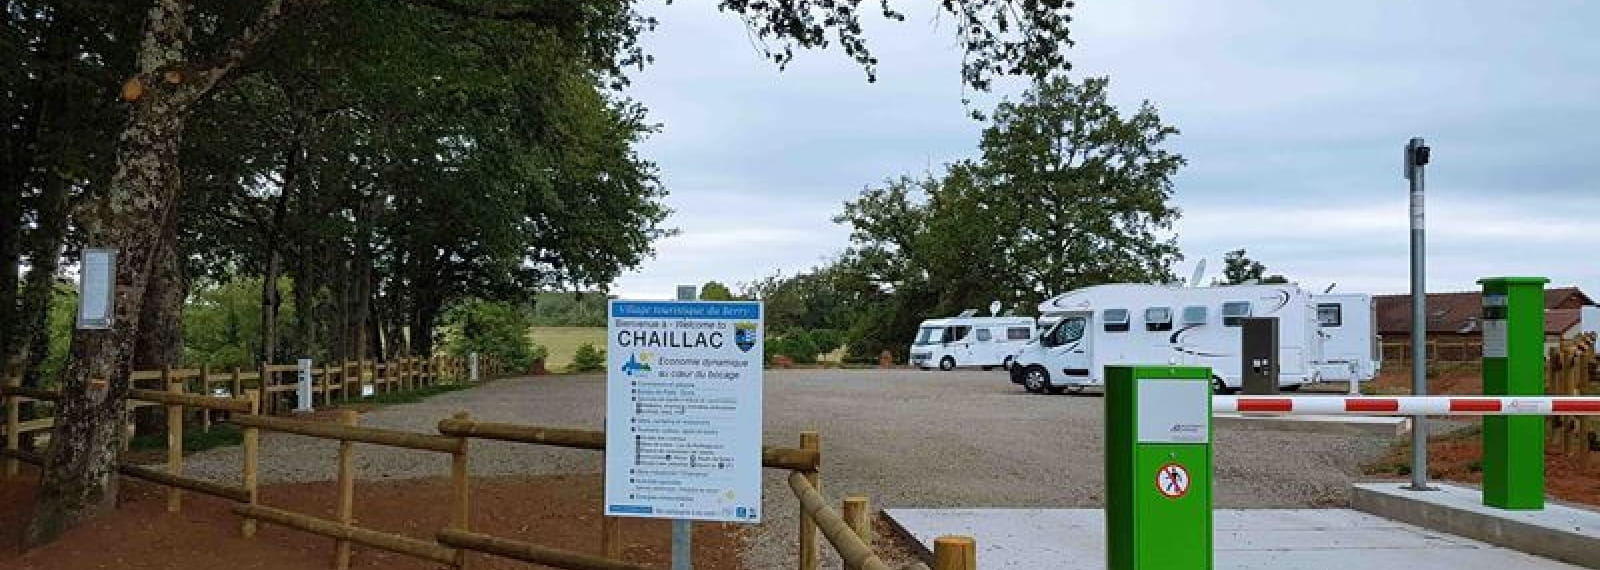 Borne camping cars Chaillac